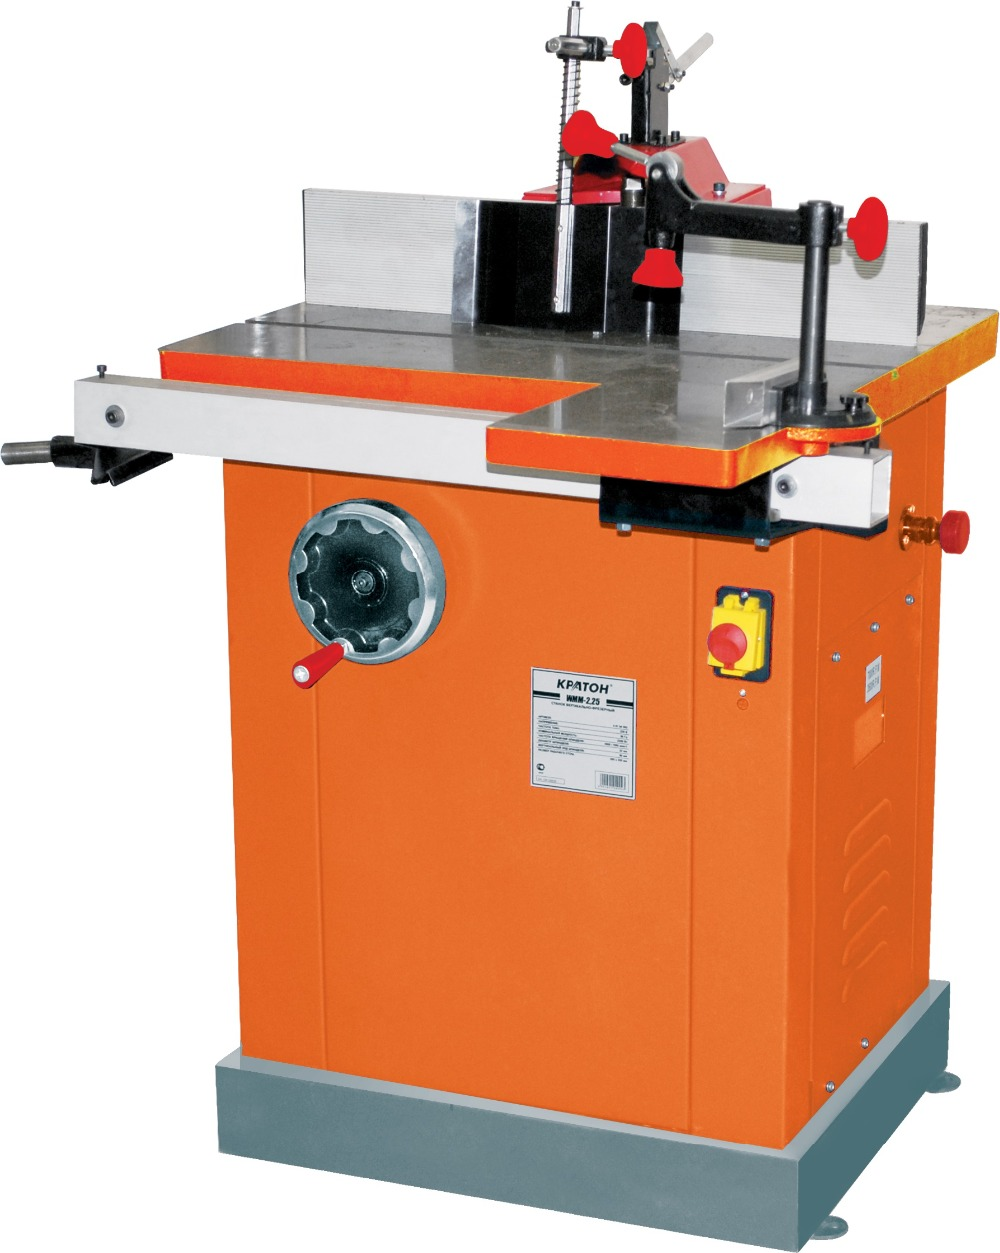 Vertical milling machine Kraton WMM-2,25 карта памяти micro sdhc 8gb class 4 qumo qm8gmicsdhc4 sd adapter